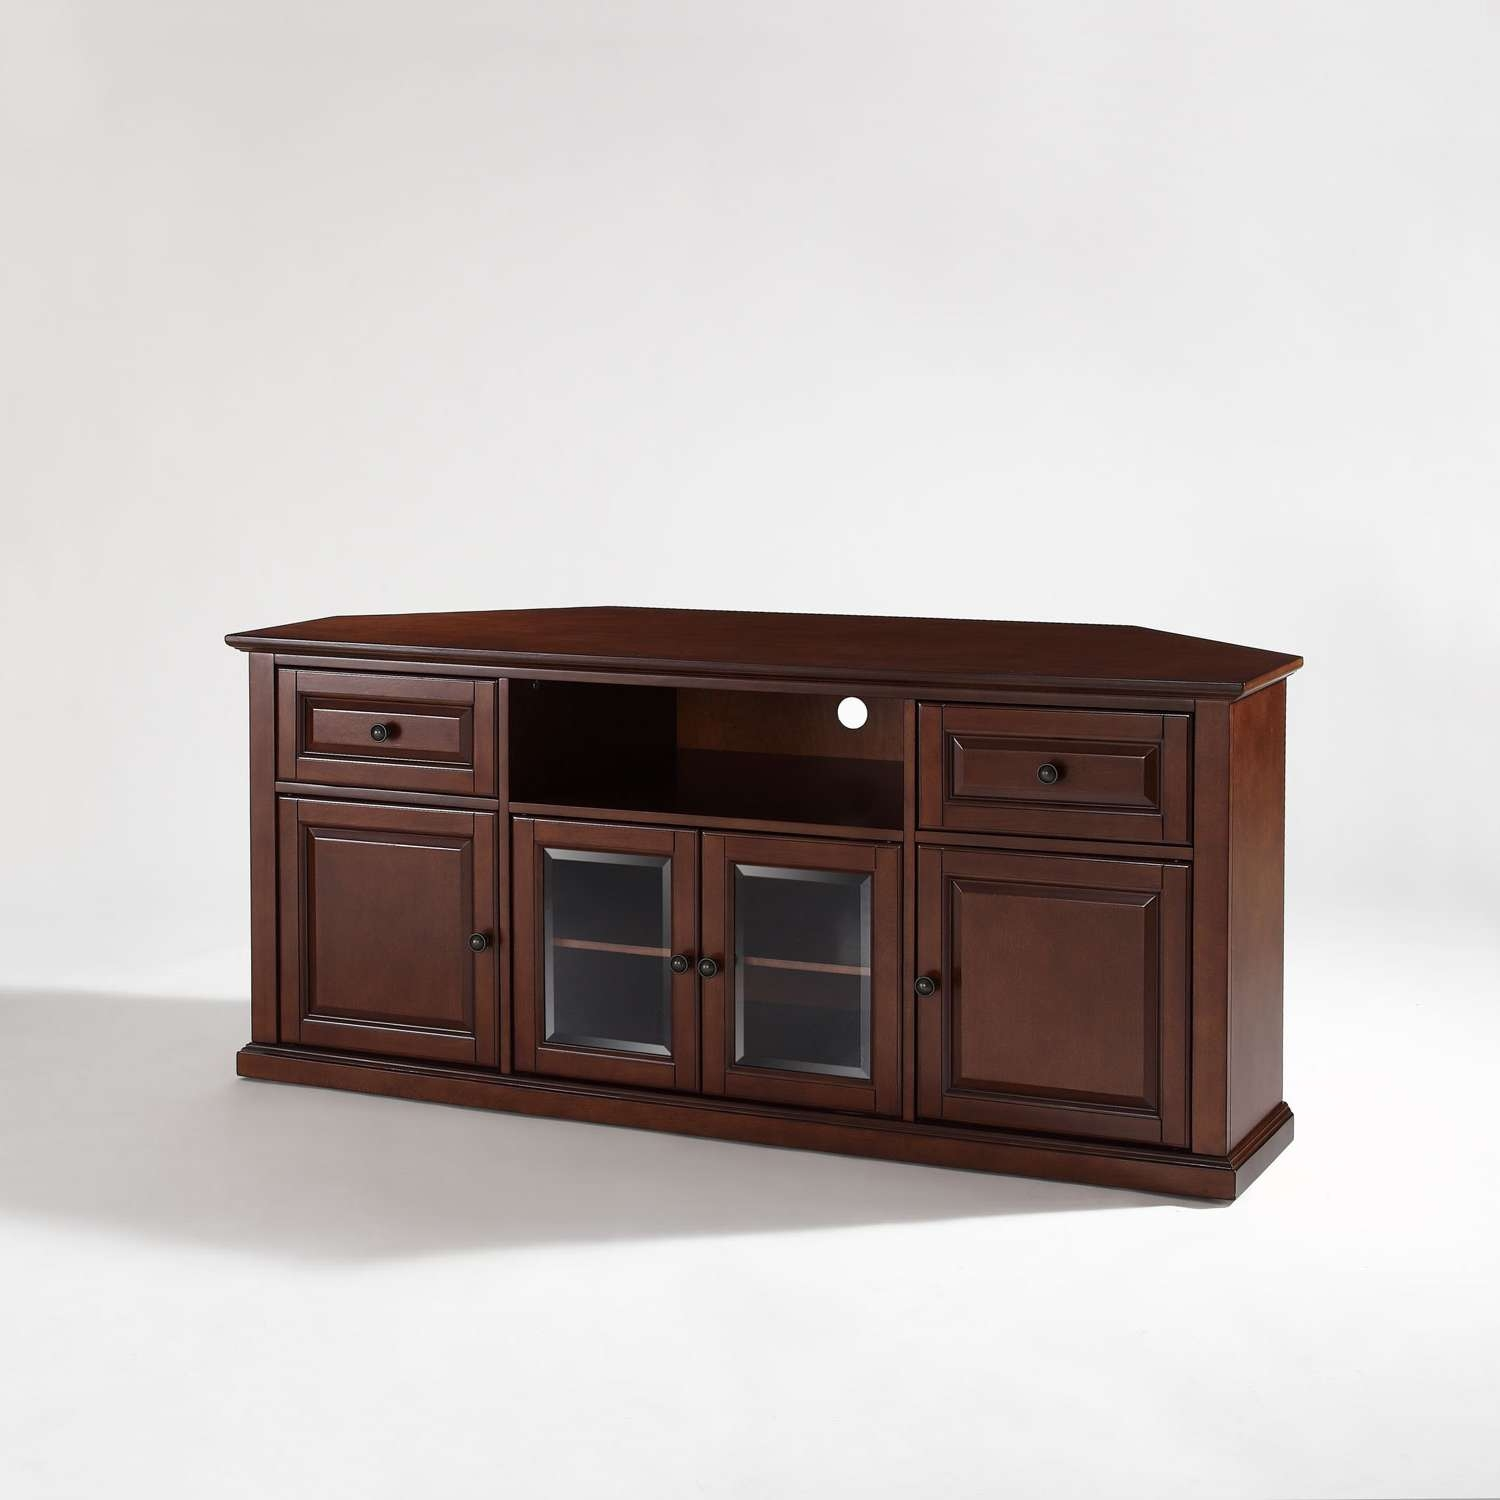 60 Inch Corner Tv Stand In Vintage Mahogany Crosley Furniture Pertaining To Mahogany Tv Cabinets (View 3 of 20)